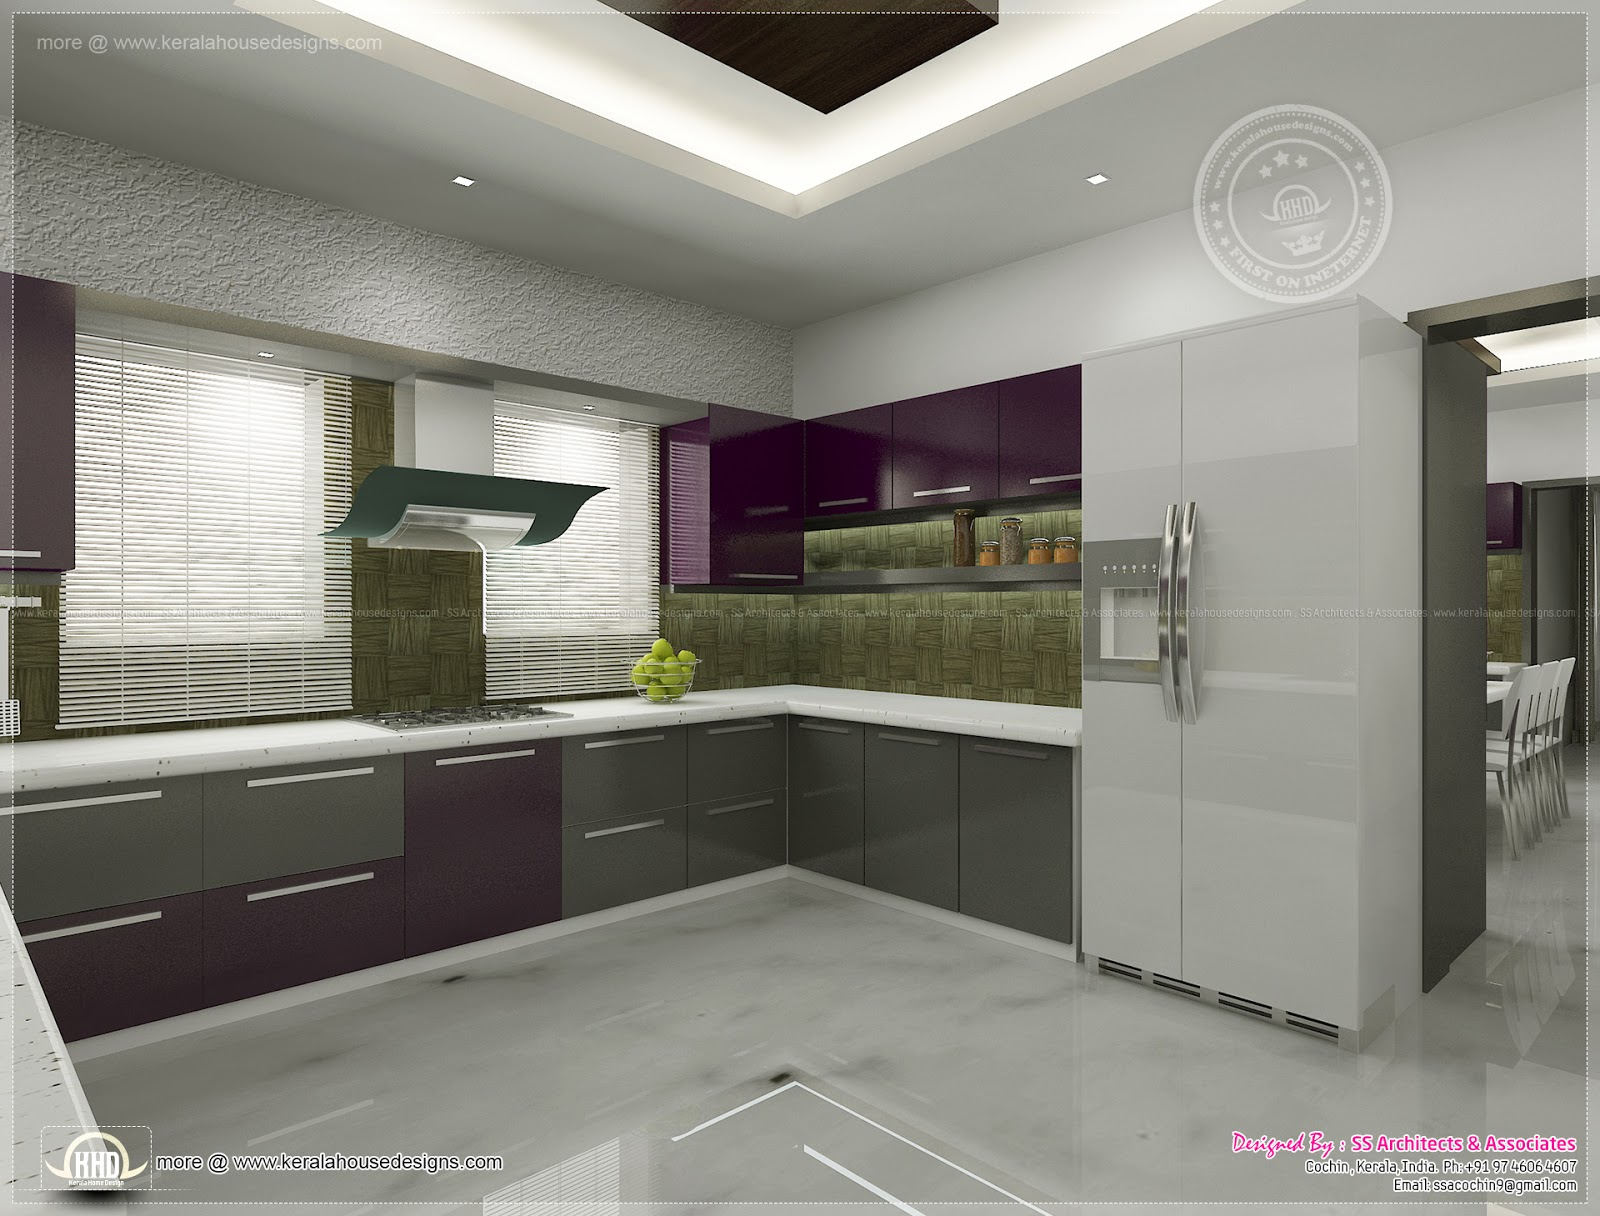 Kitchen interior views by ss architects cochin home for Interior design images kitchen